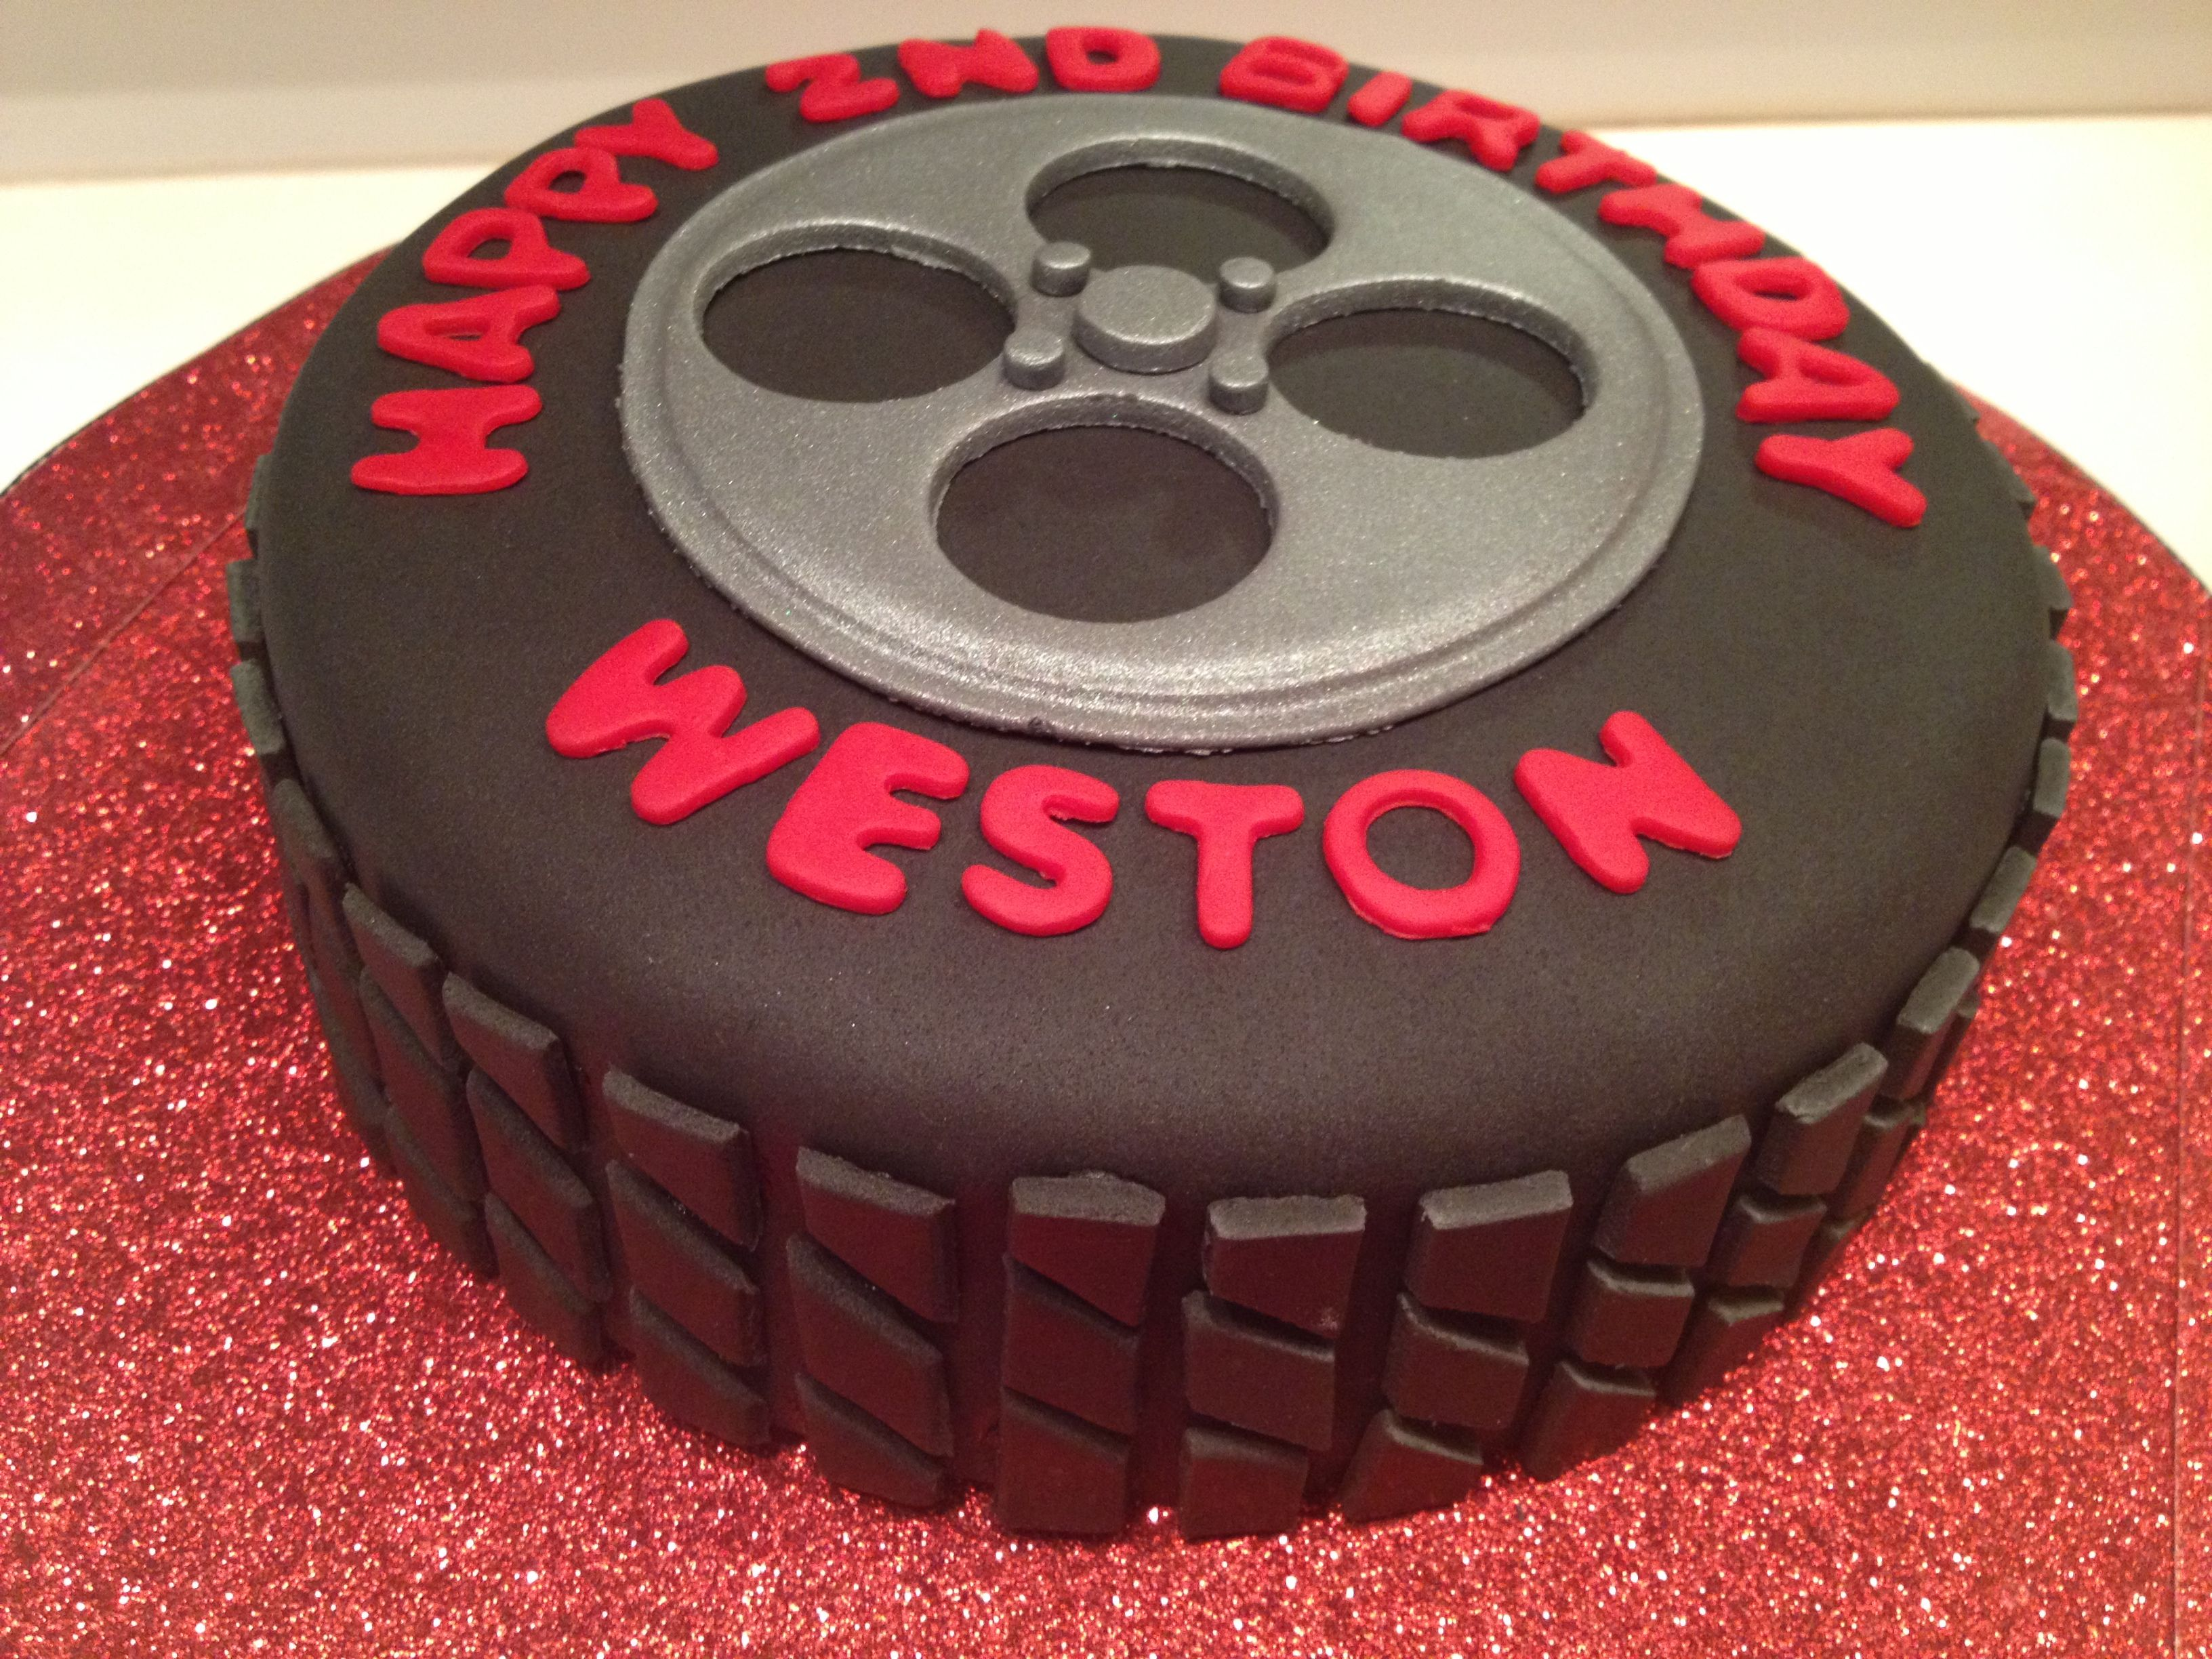 Tire cake With keys and car for 16th birthday I feel the need to